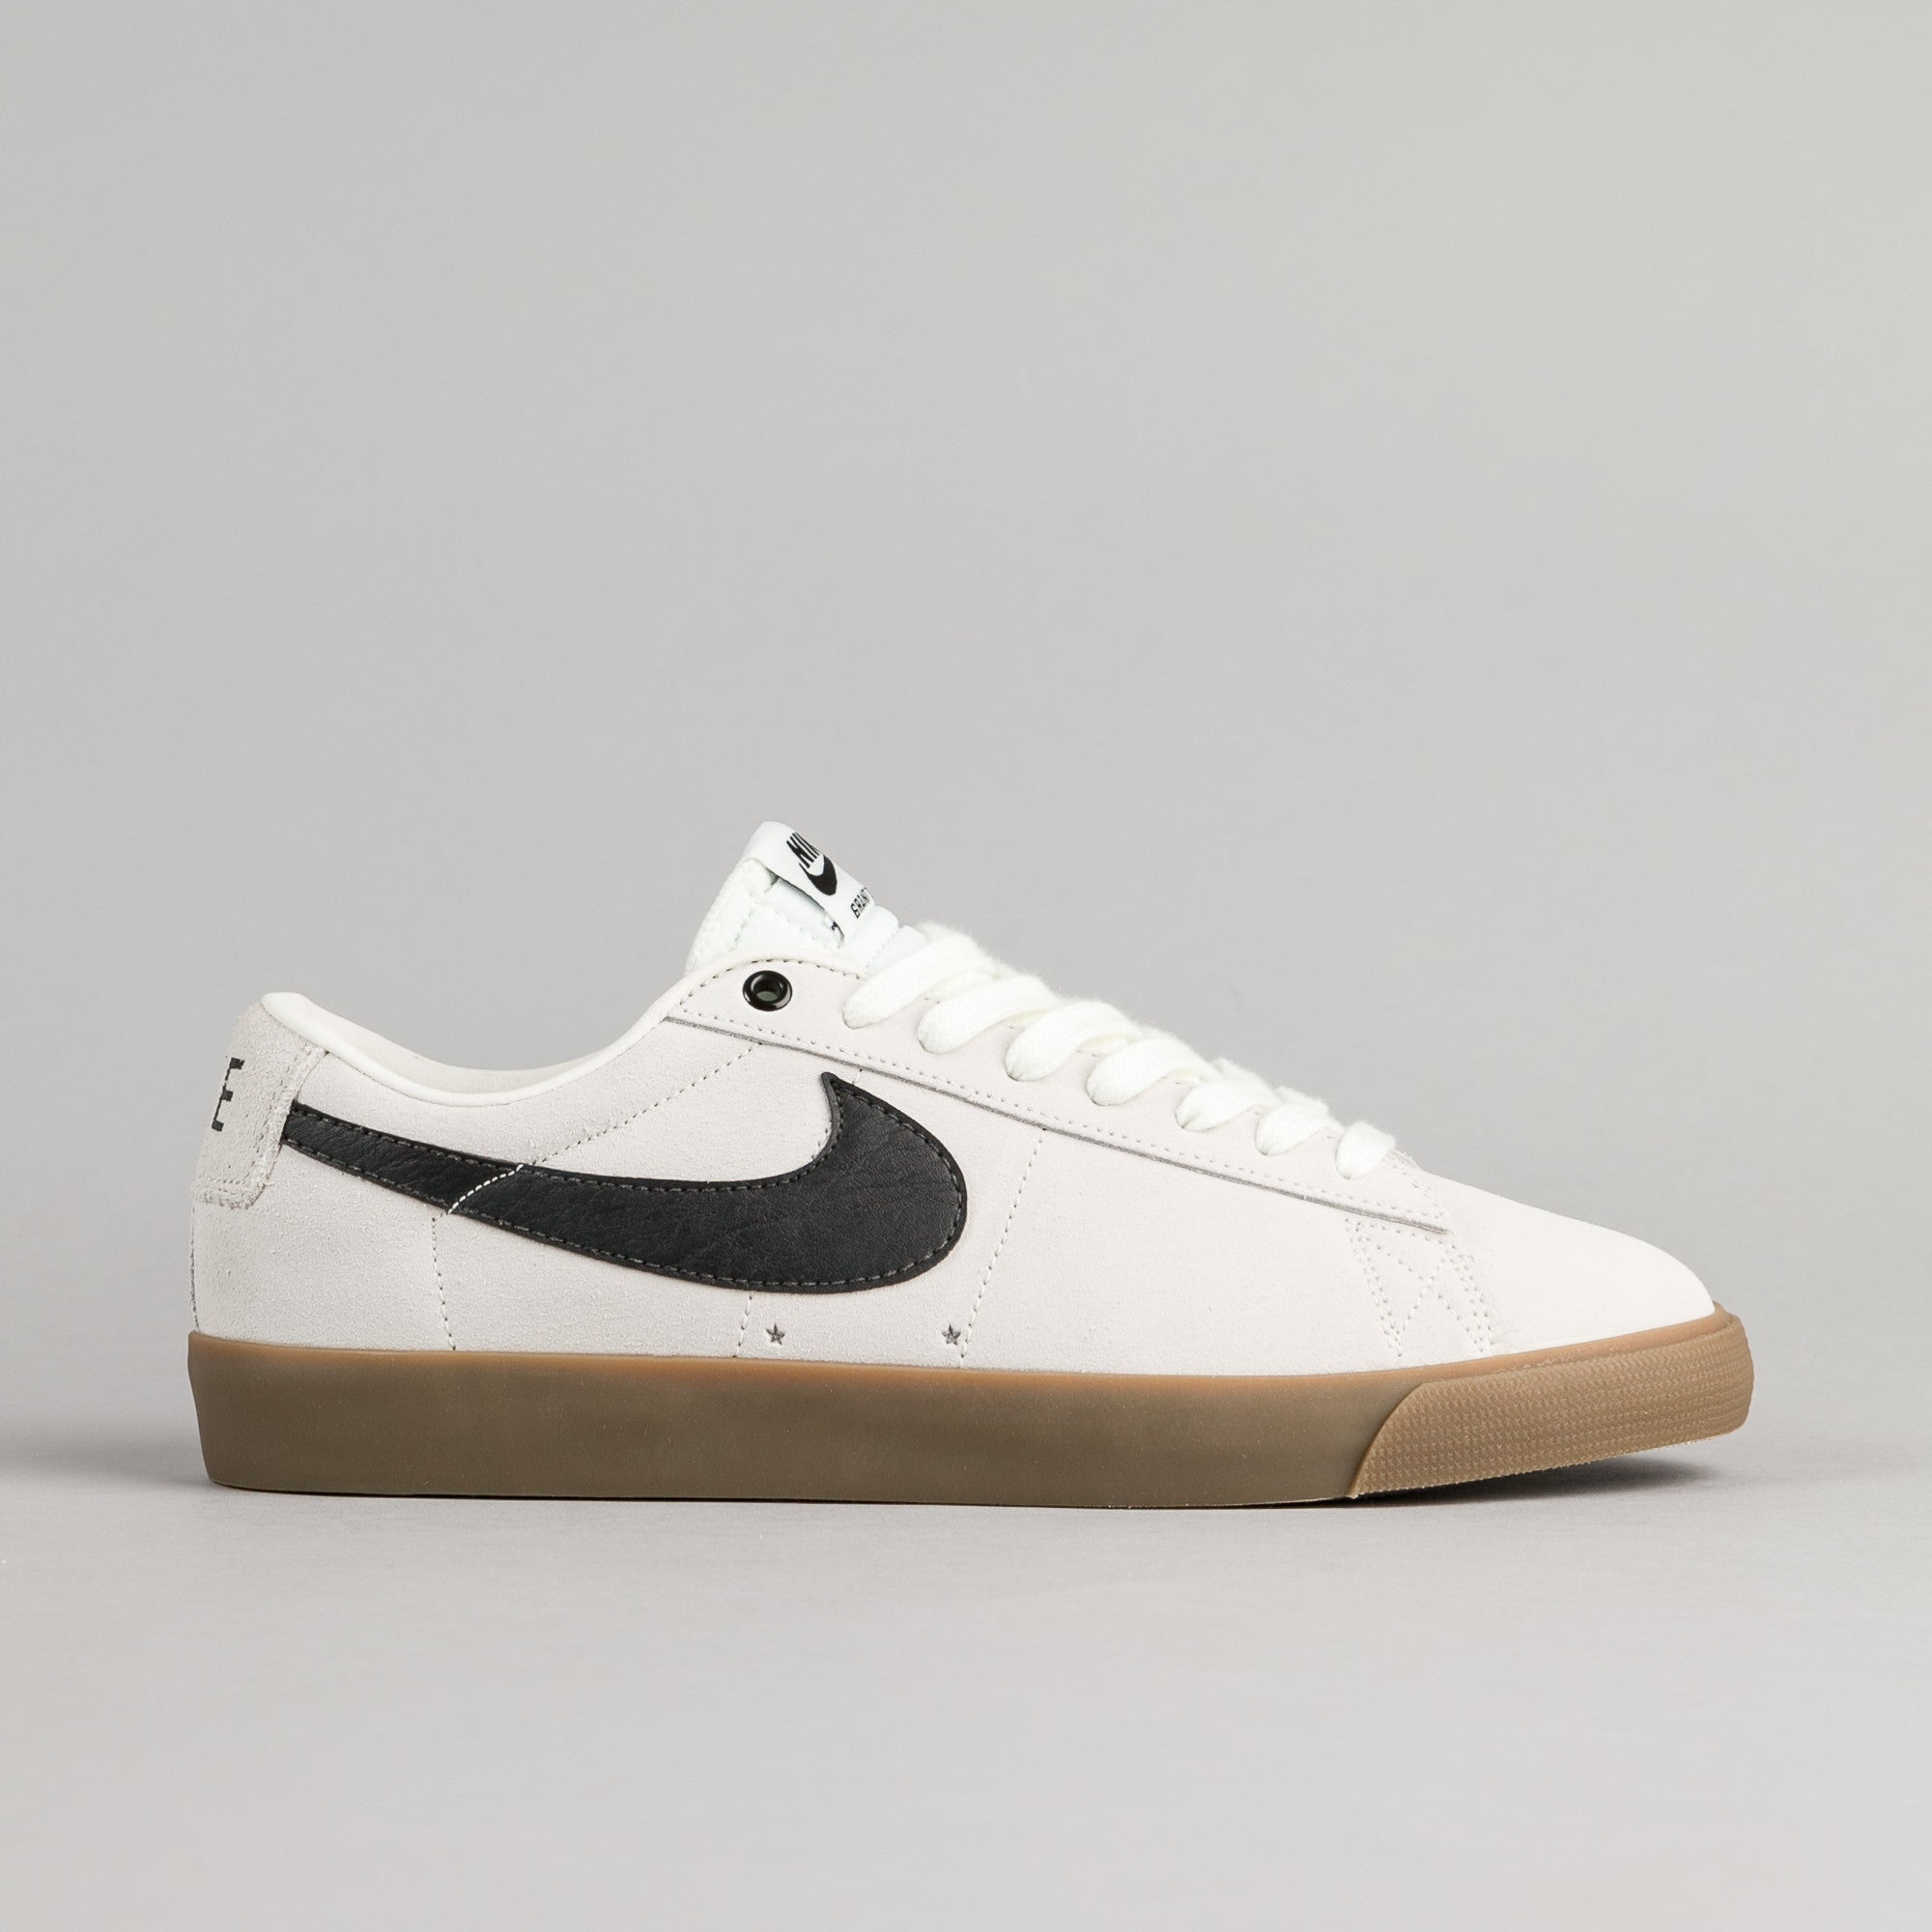 nike sb blazer low gt shoes ivory black gum light. Black Bedroom Furniture Sets. Home Design Ideas